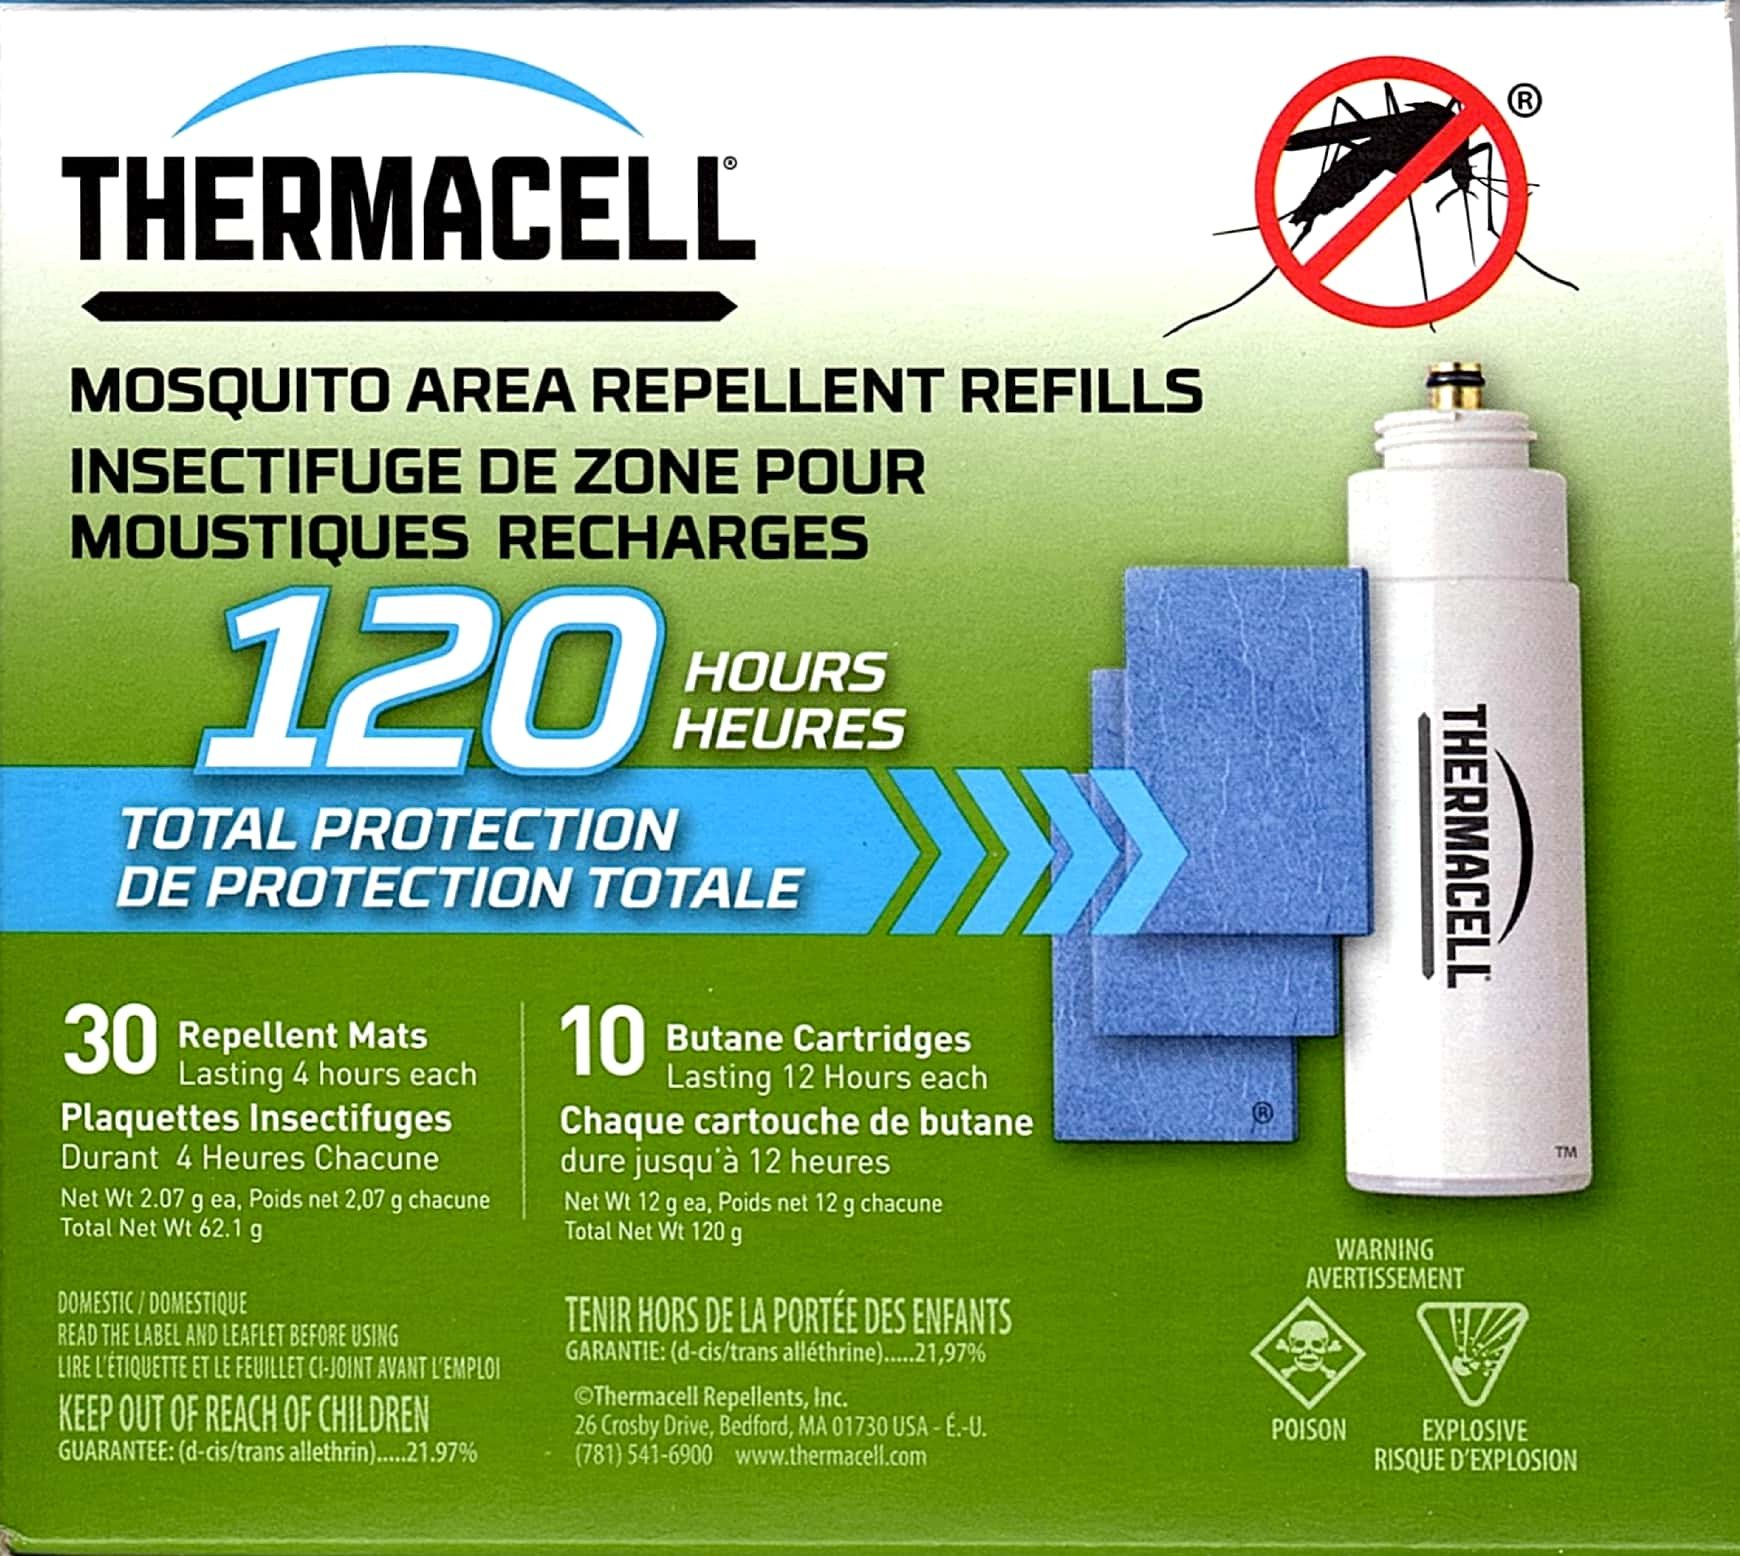 Thermacell Repellents R 10 Butane Refill Cartridge Mega Pack by Thermacell (Image #1)